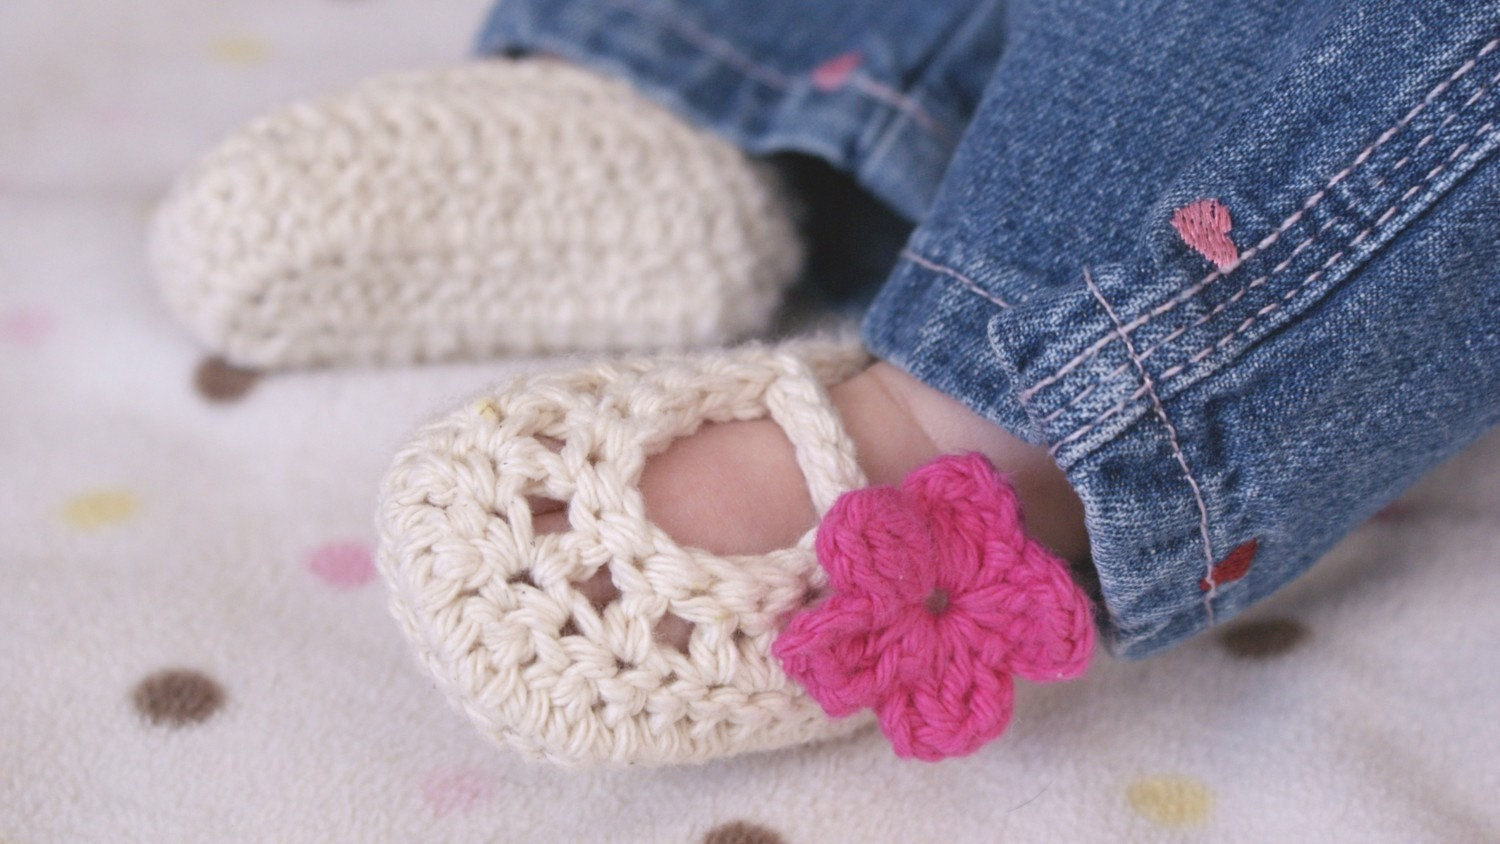 Crochet unique Tootsie wraps baby booties by Erica at Crochetabout. This Golden slipper crochet booties great for boy and girl add your style with different colour by Erica at Crochetabout. Make this cute ribbed booties pair up with the bear hat at Knotyournanacrochet.